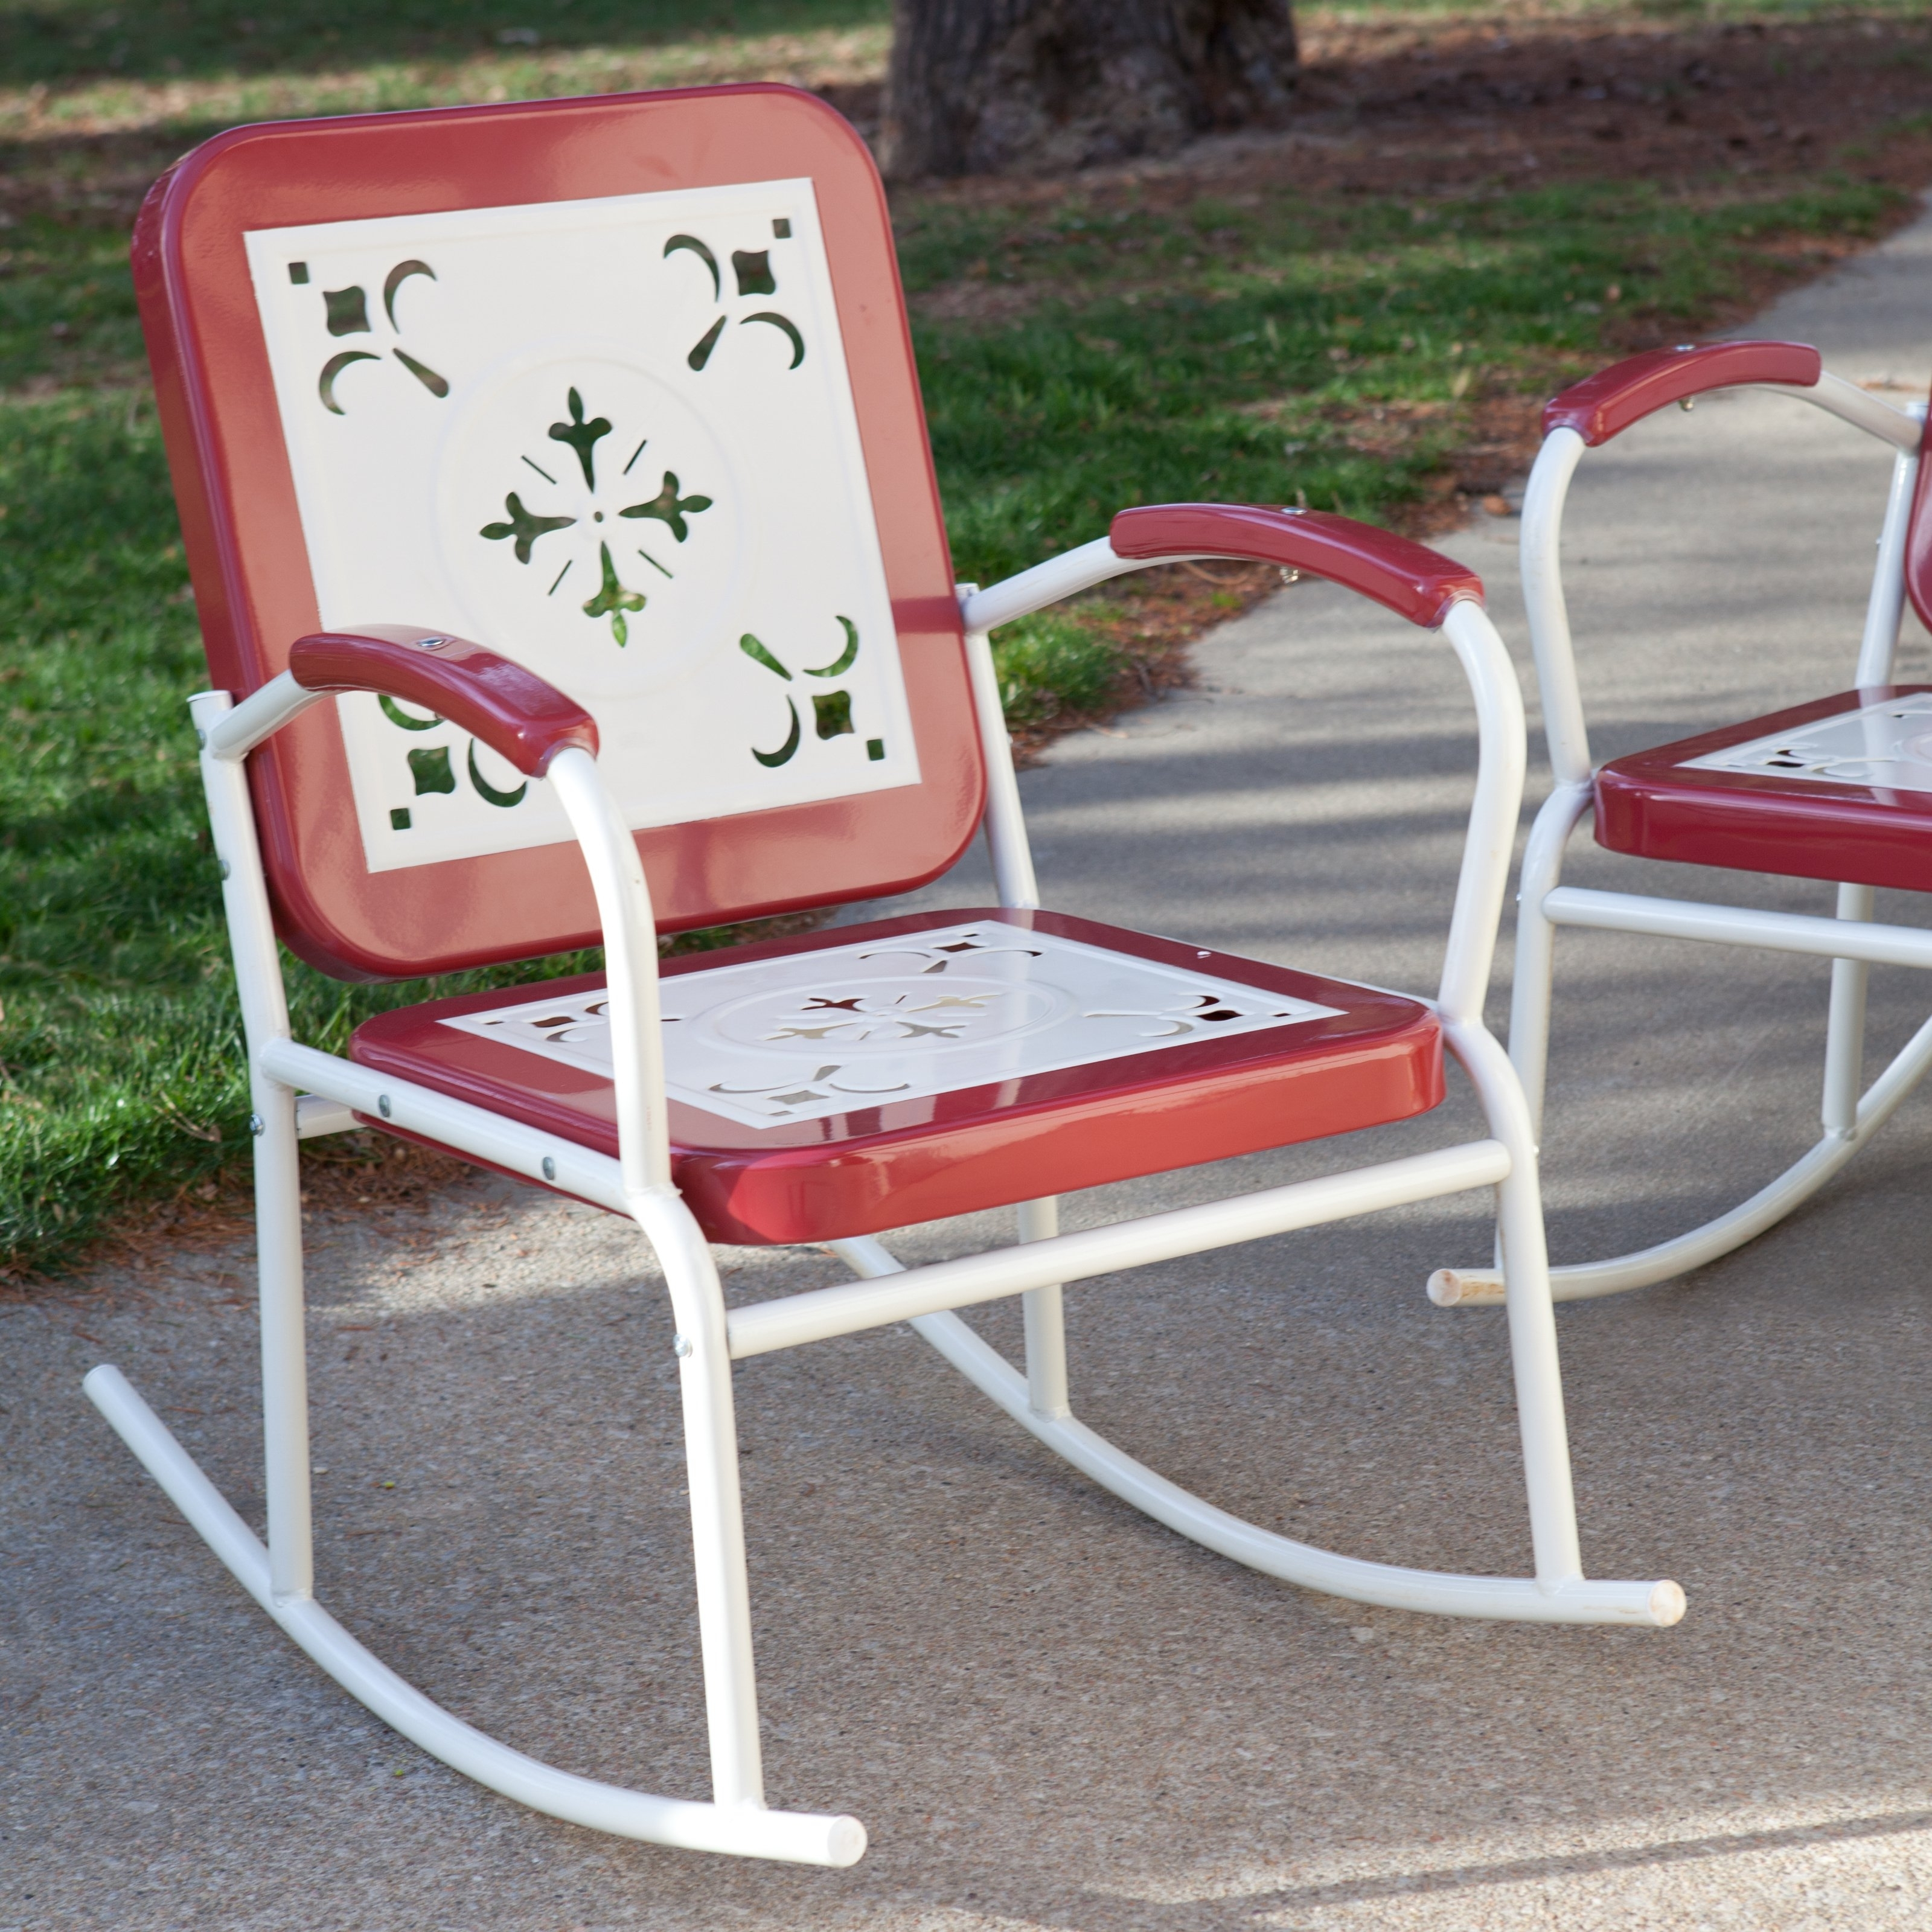 Most Current Coral Coast Paradise Cove Retro Metal Rocking Chairs – Set Of 2 Pertaining To Retro Outdoor Rocking Chairs (View 2 of 15)